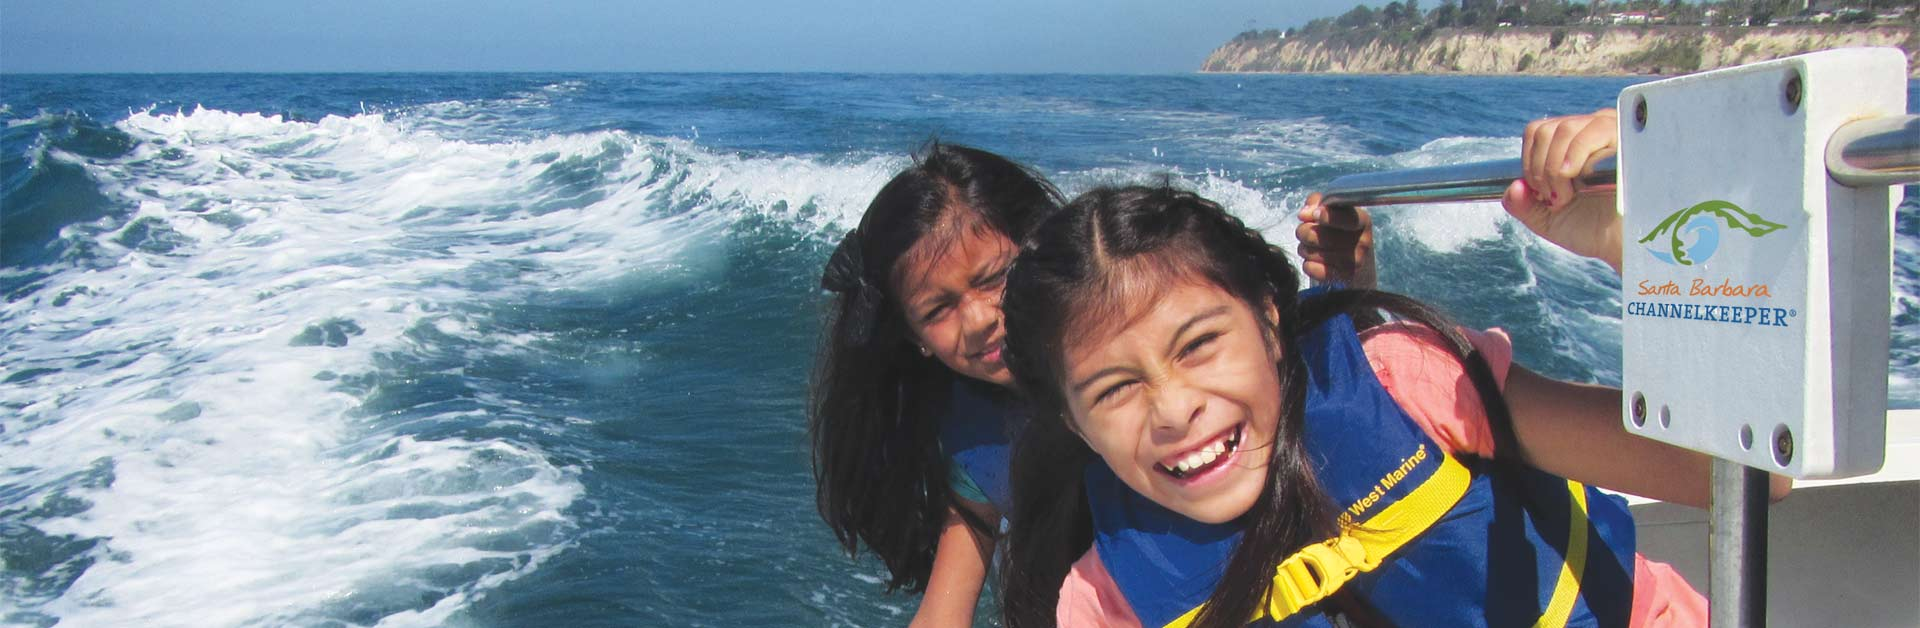 Happy kids smiling while their hands touch the water as they ride on a boat in the ocean.